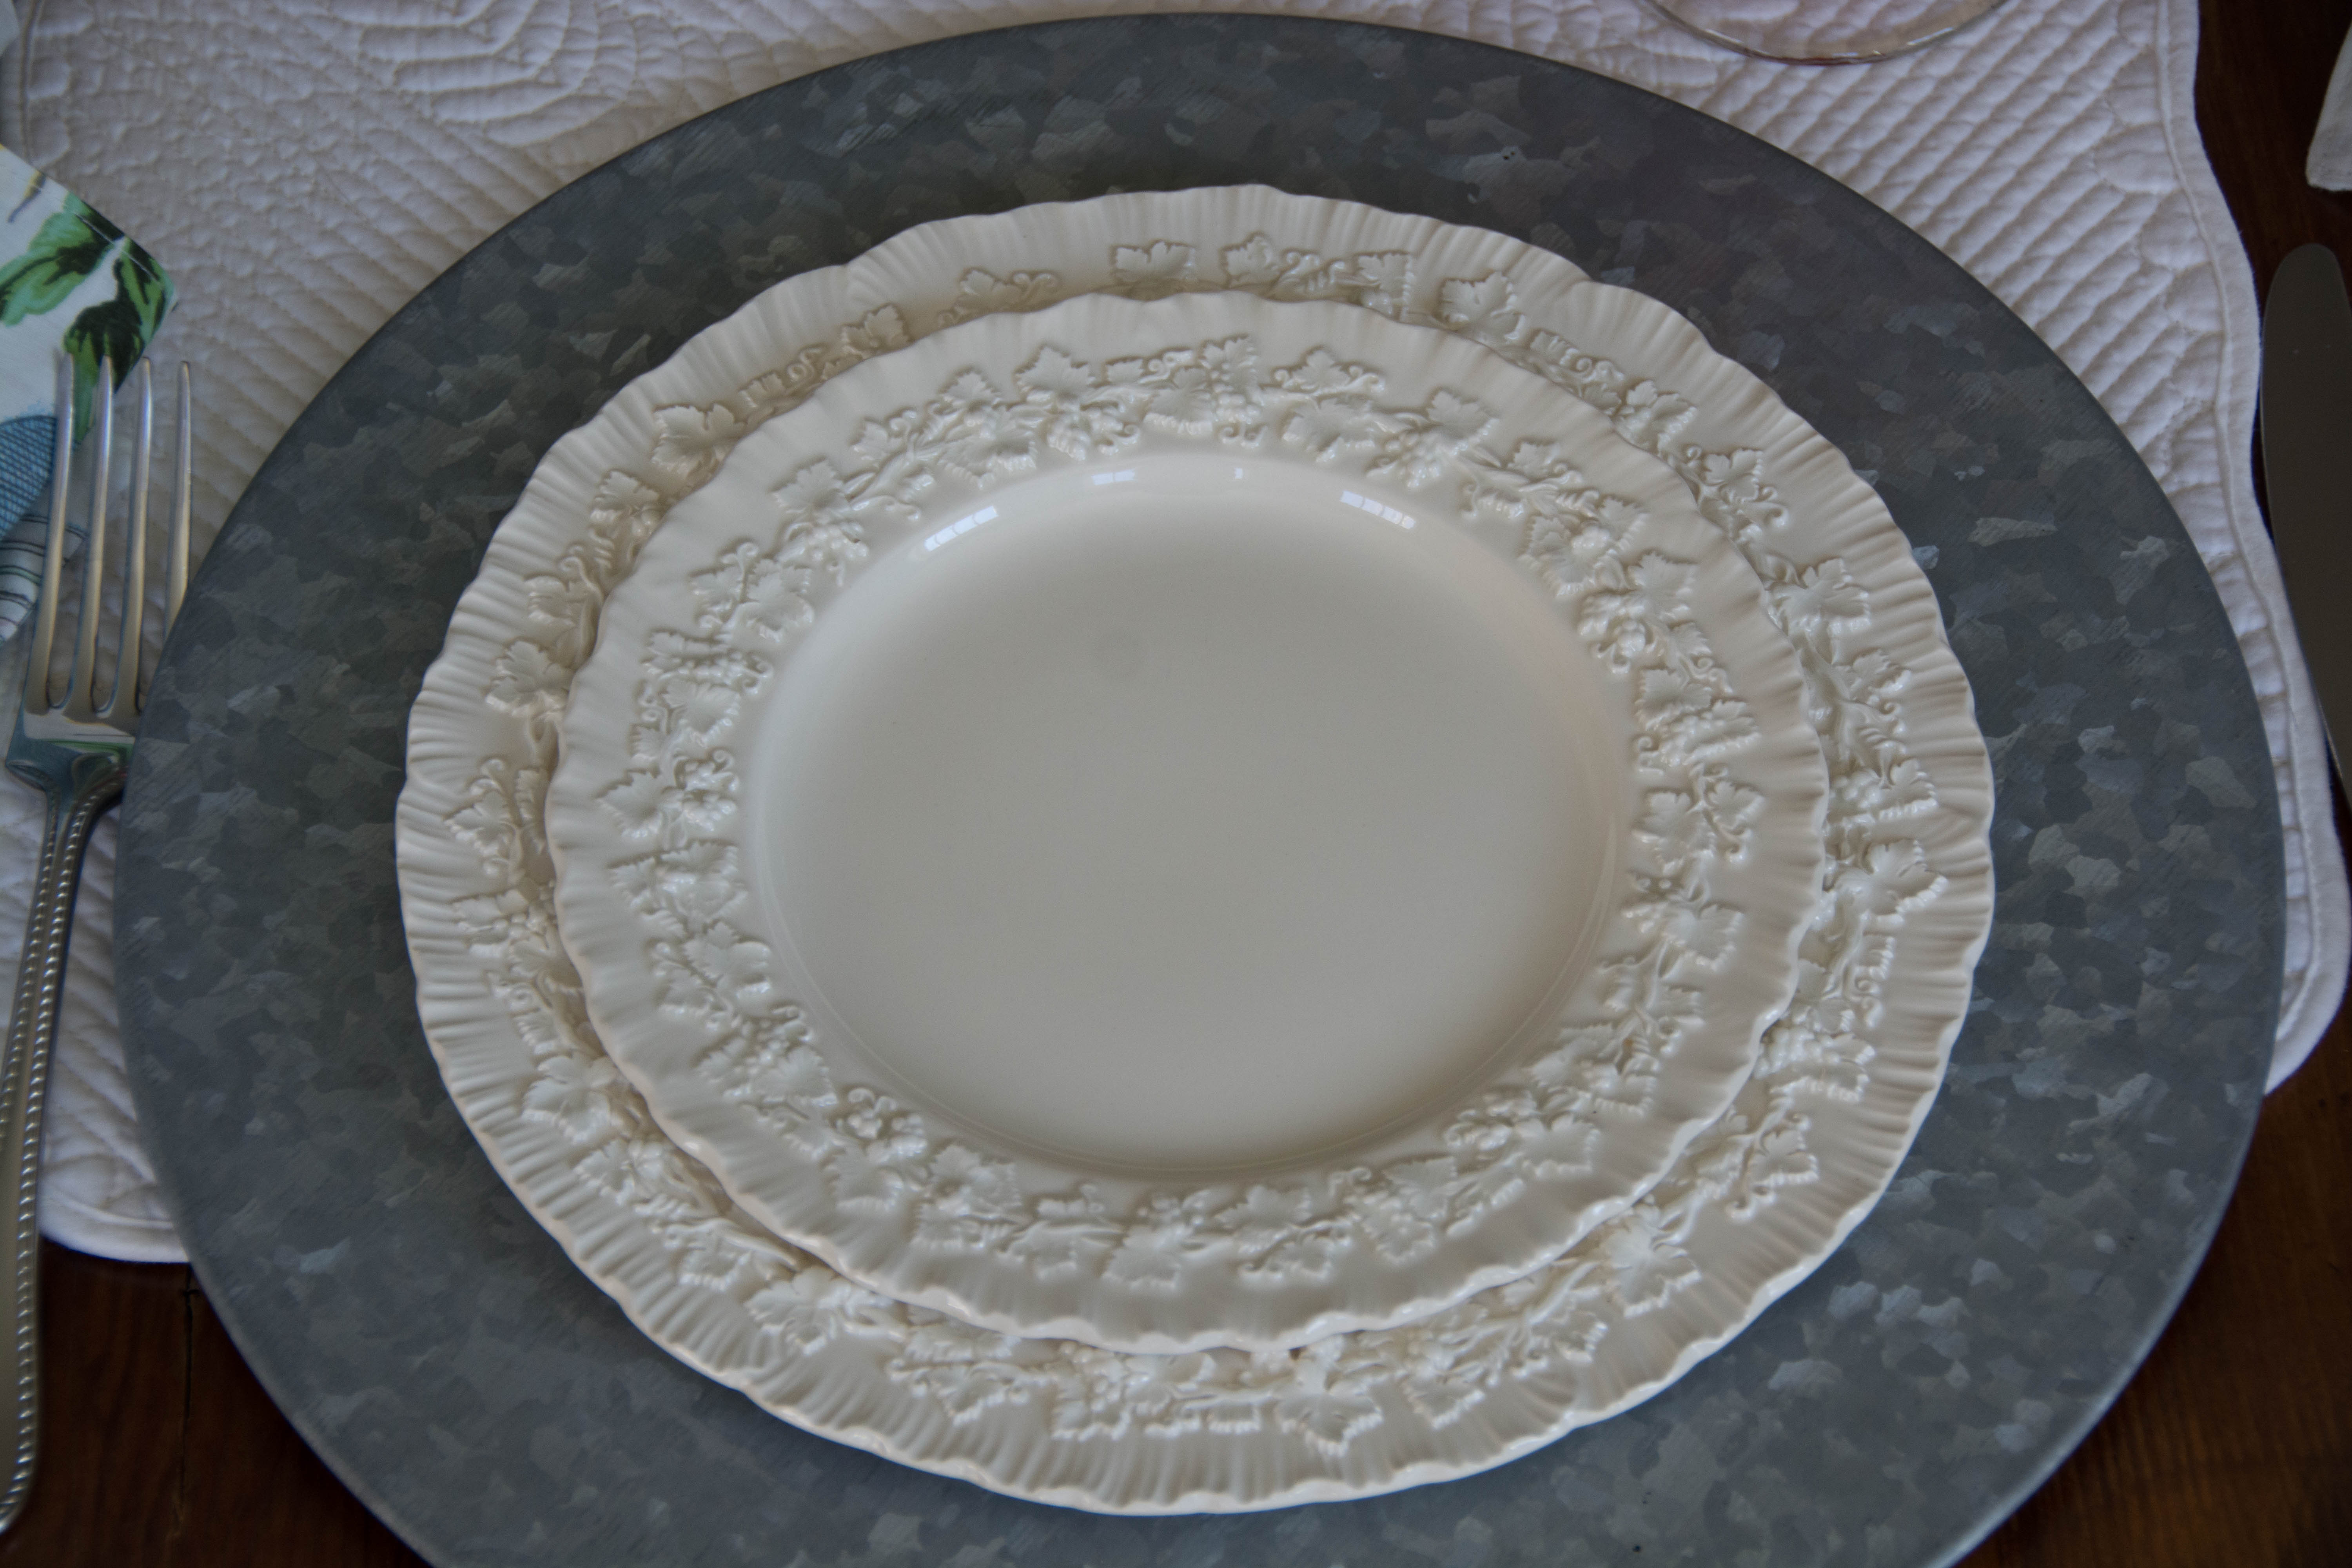 WedgwoodShelledgeCreamoncream-2434